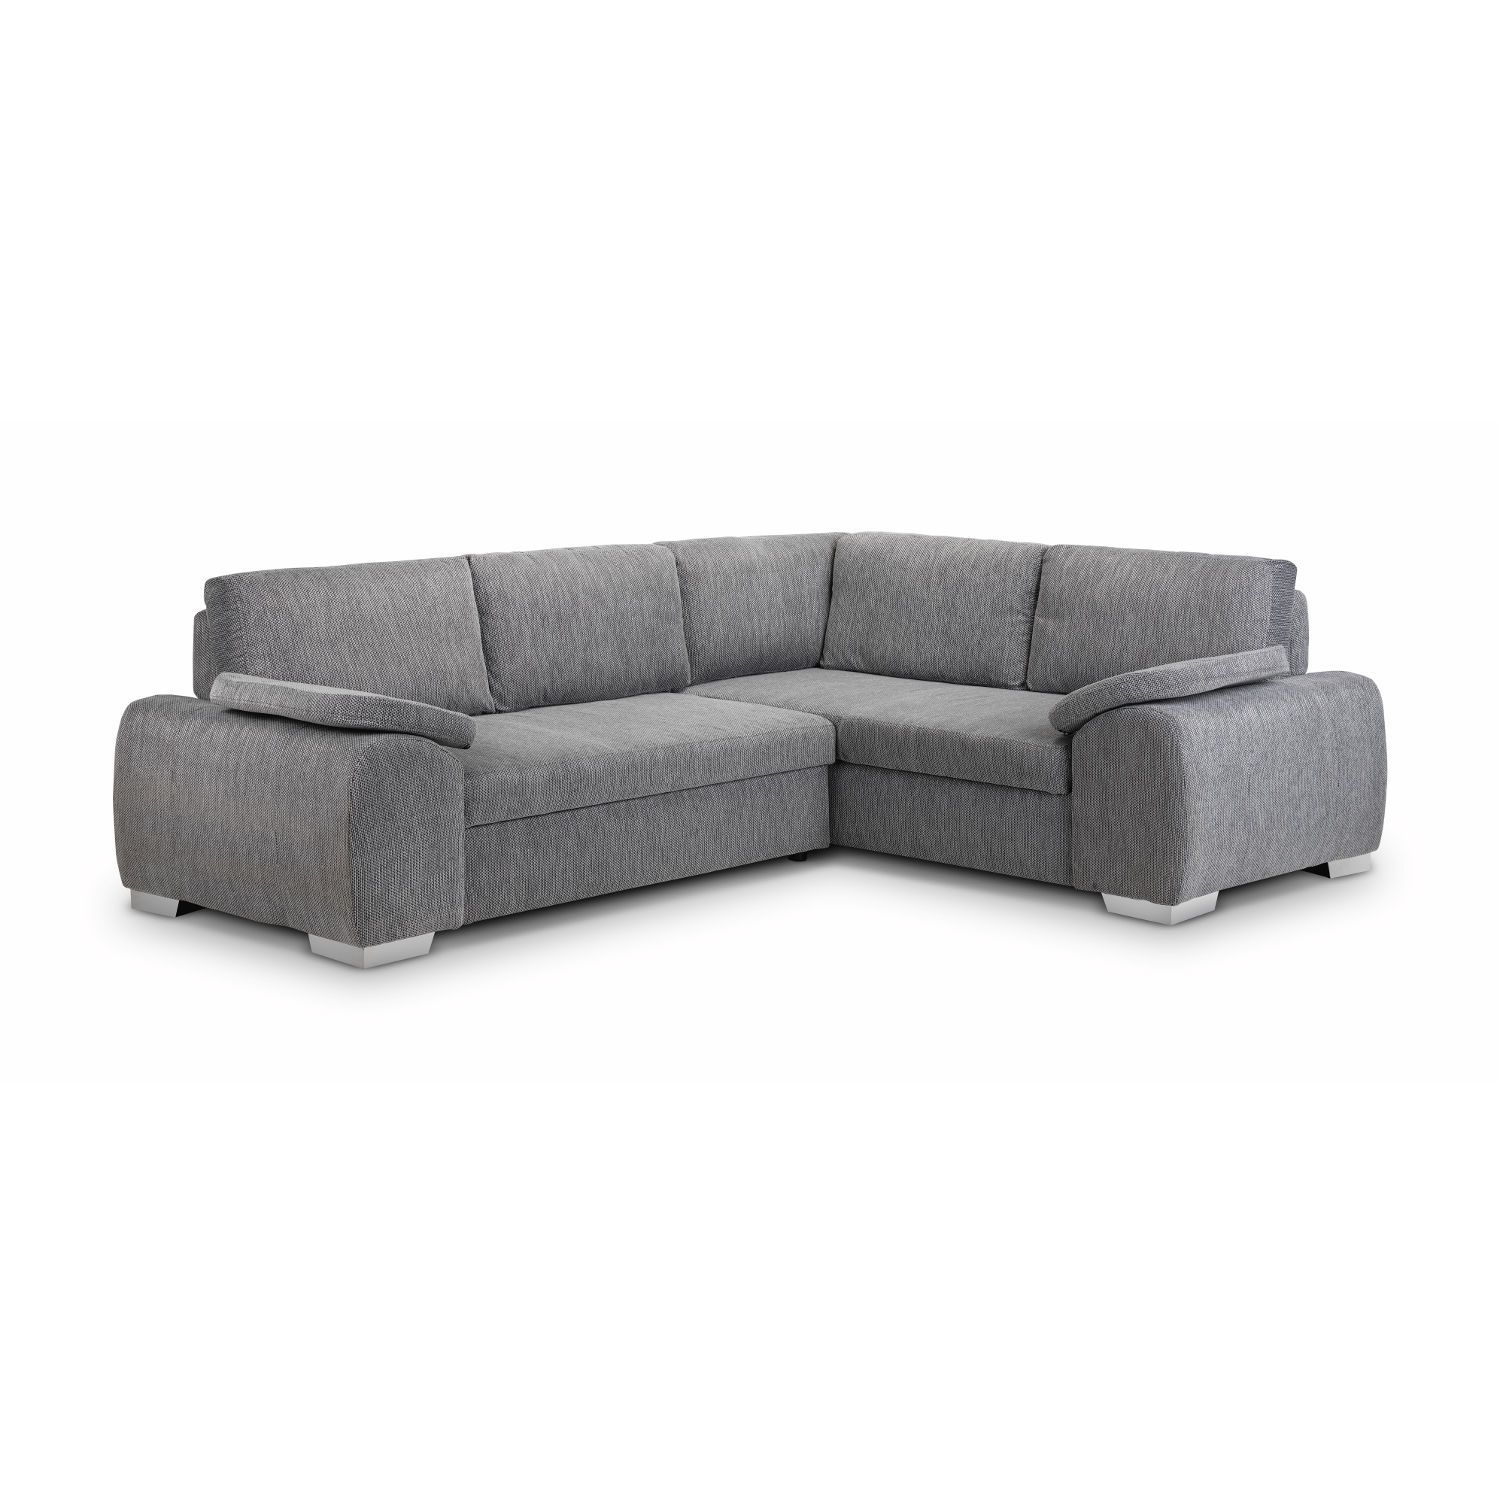 Enzo Corner Sofa Bed with Storage Fabric – Next Day Delivery Enzo